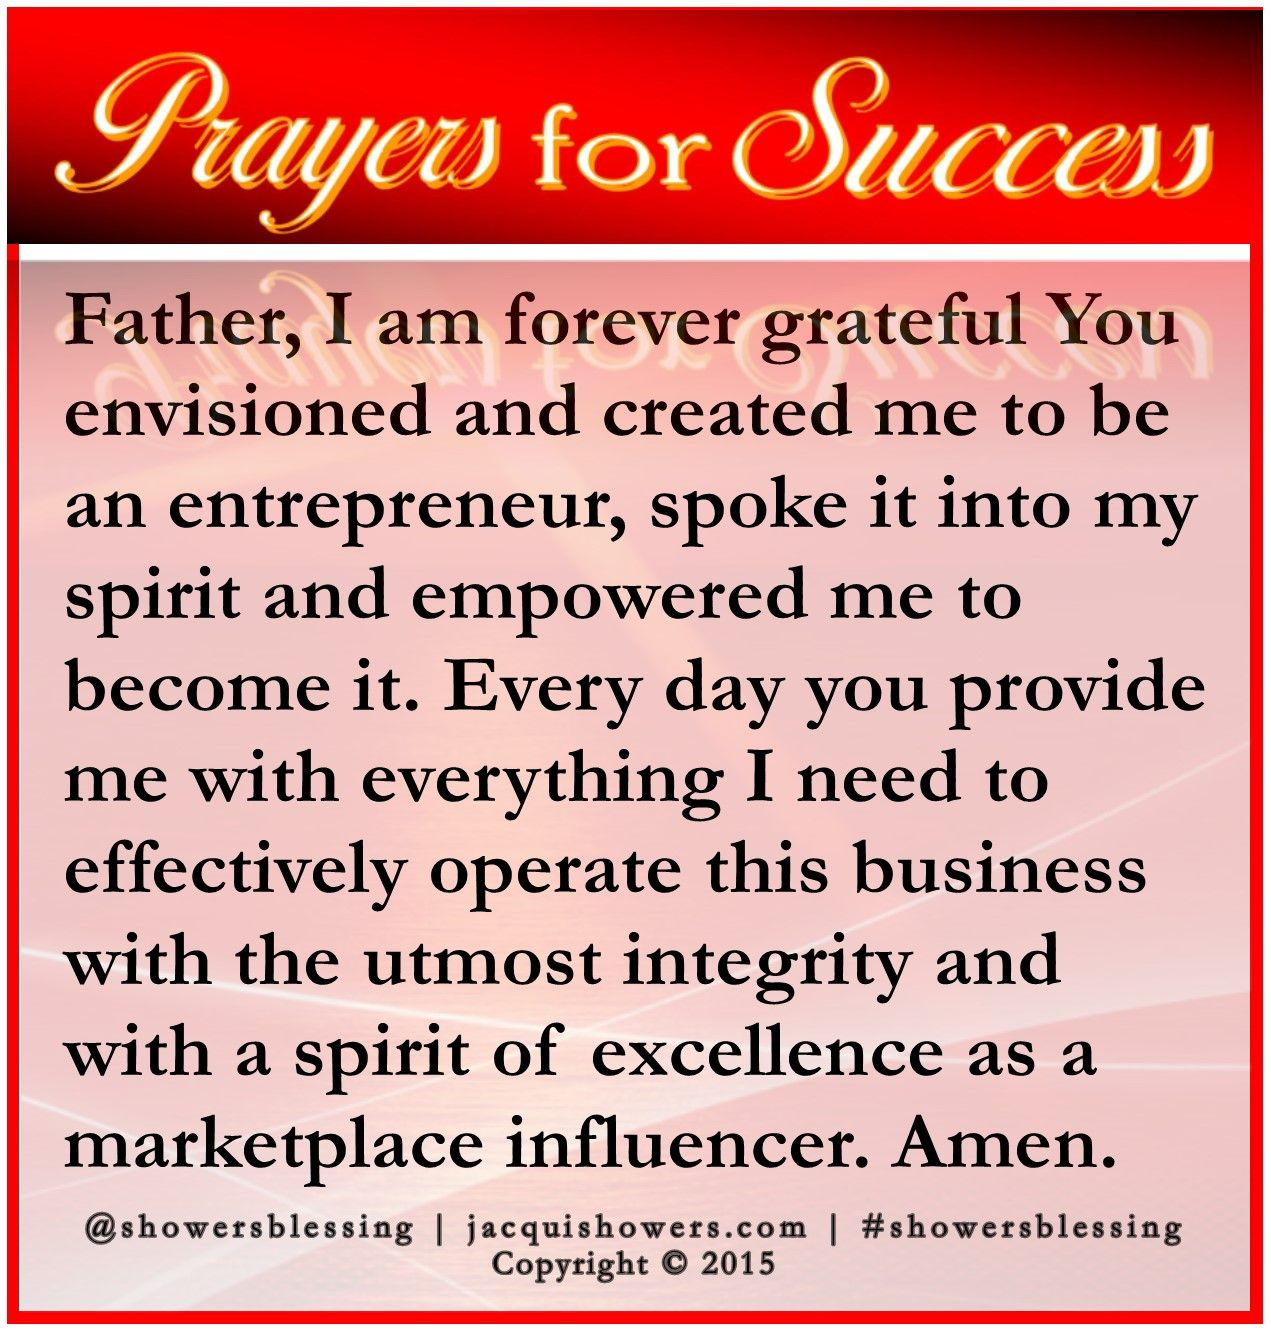 Prayer For Success Nov 18 With Images Prayer For Success